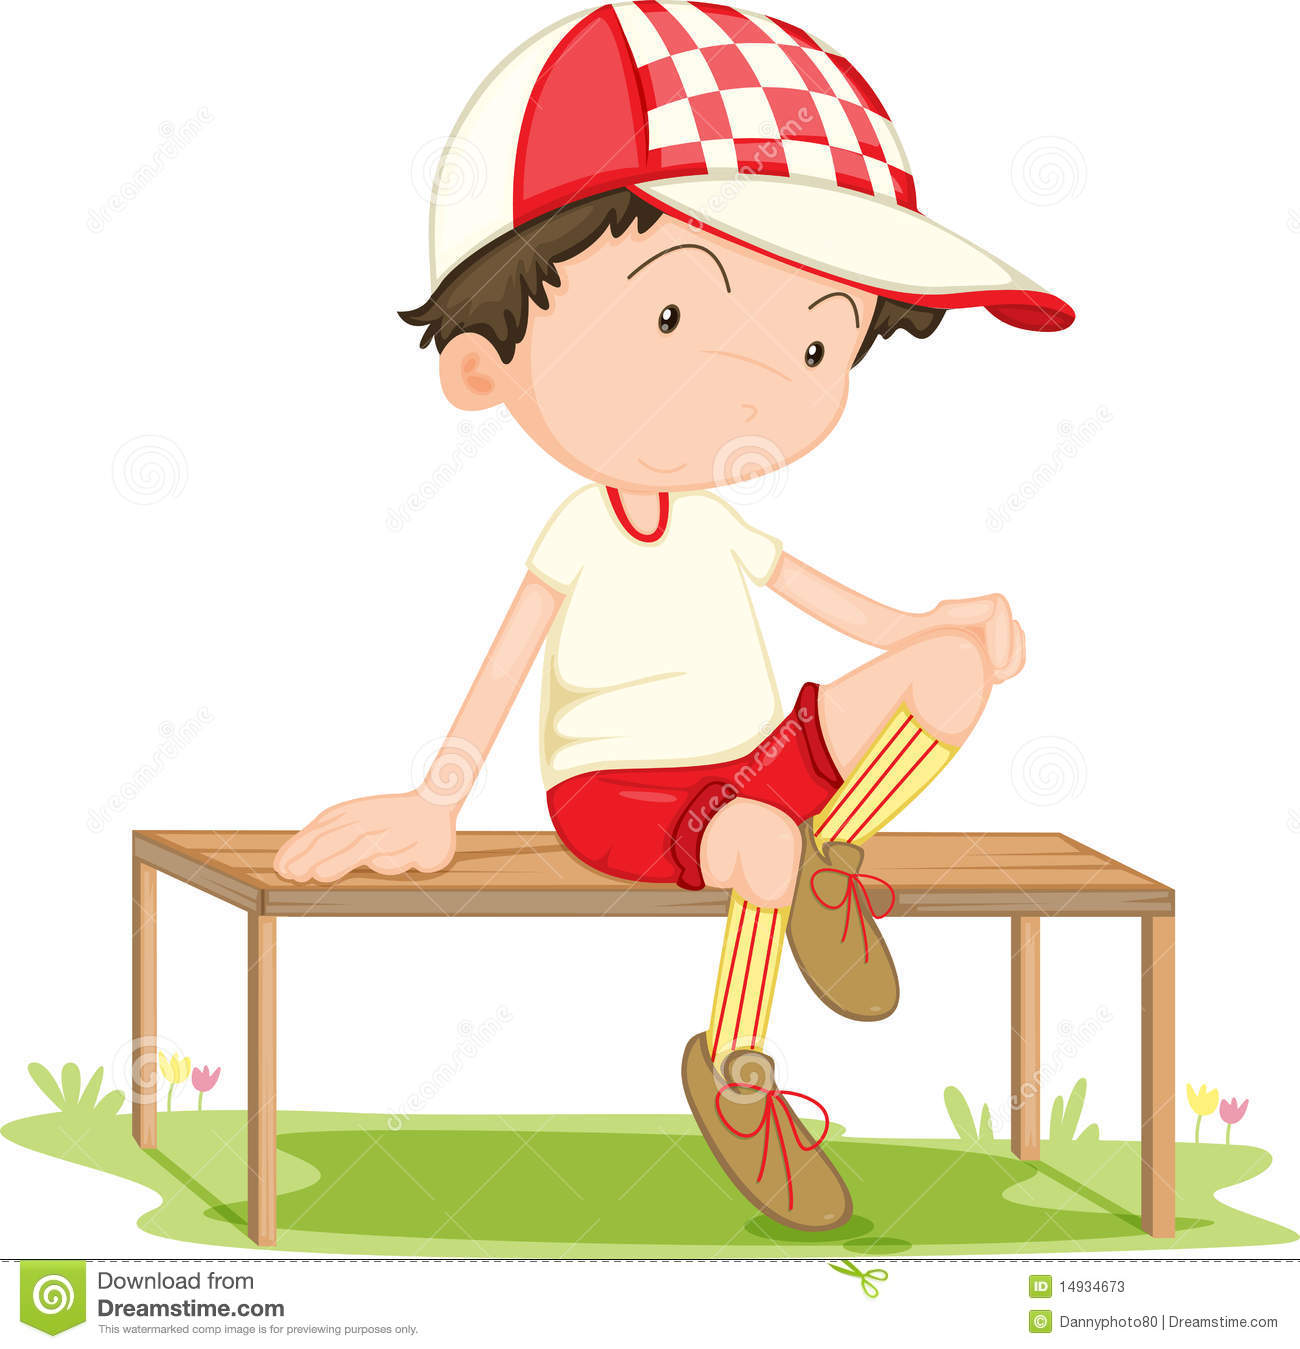 A Boy Sitting on Bench stock vector. Illustration of ...